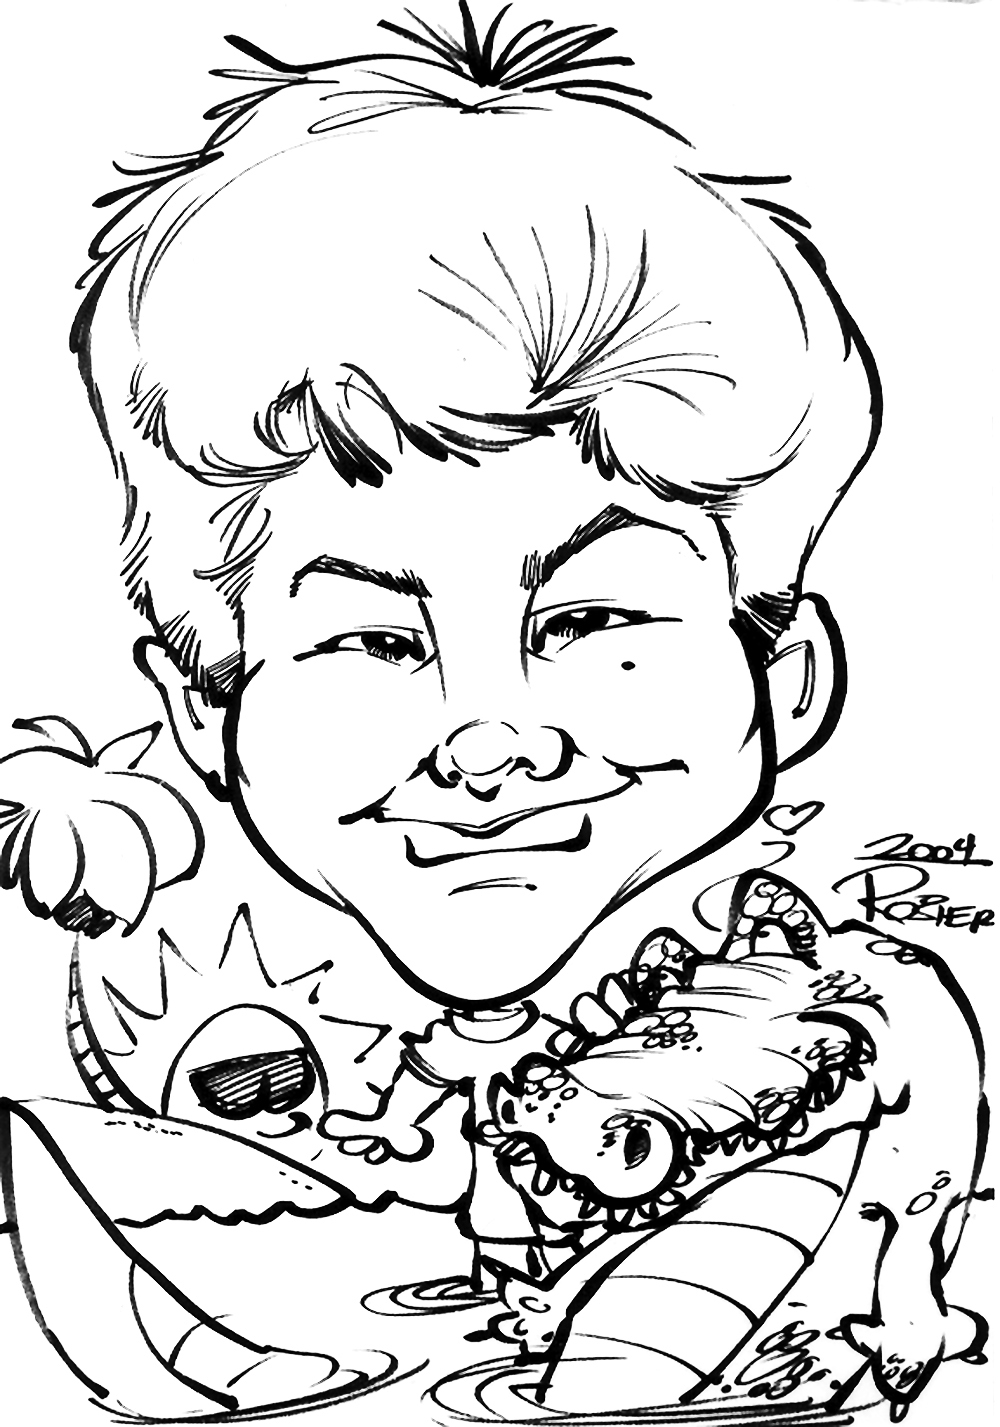 Traditional Hand-Drawn Caricature Sample 2